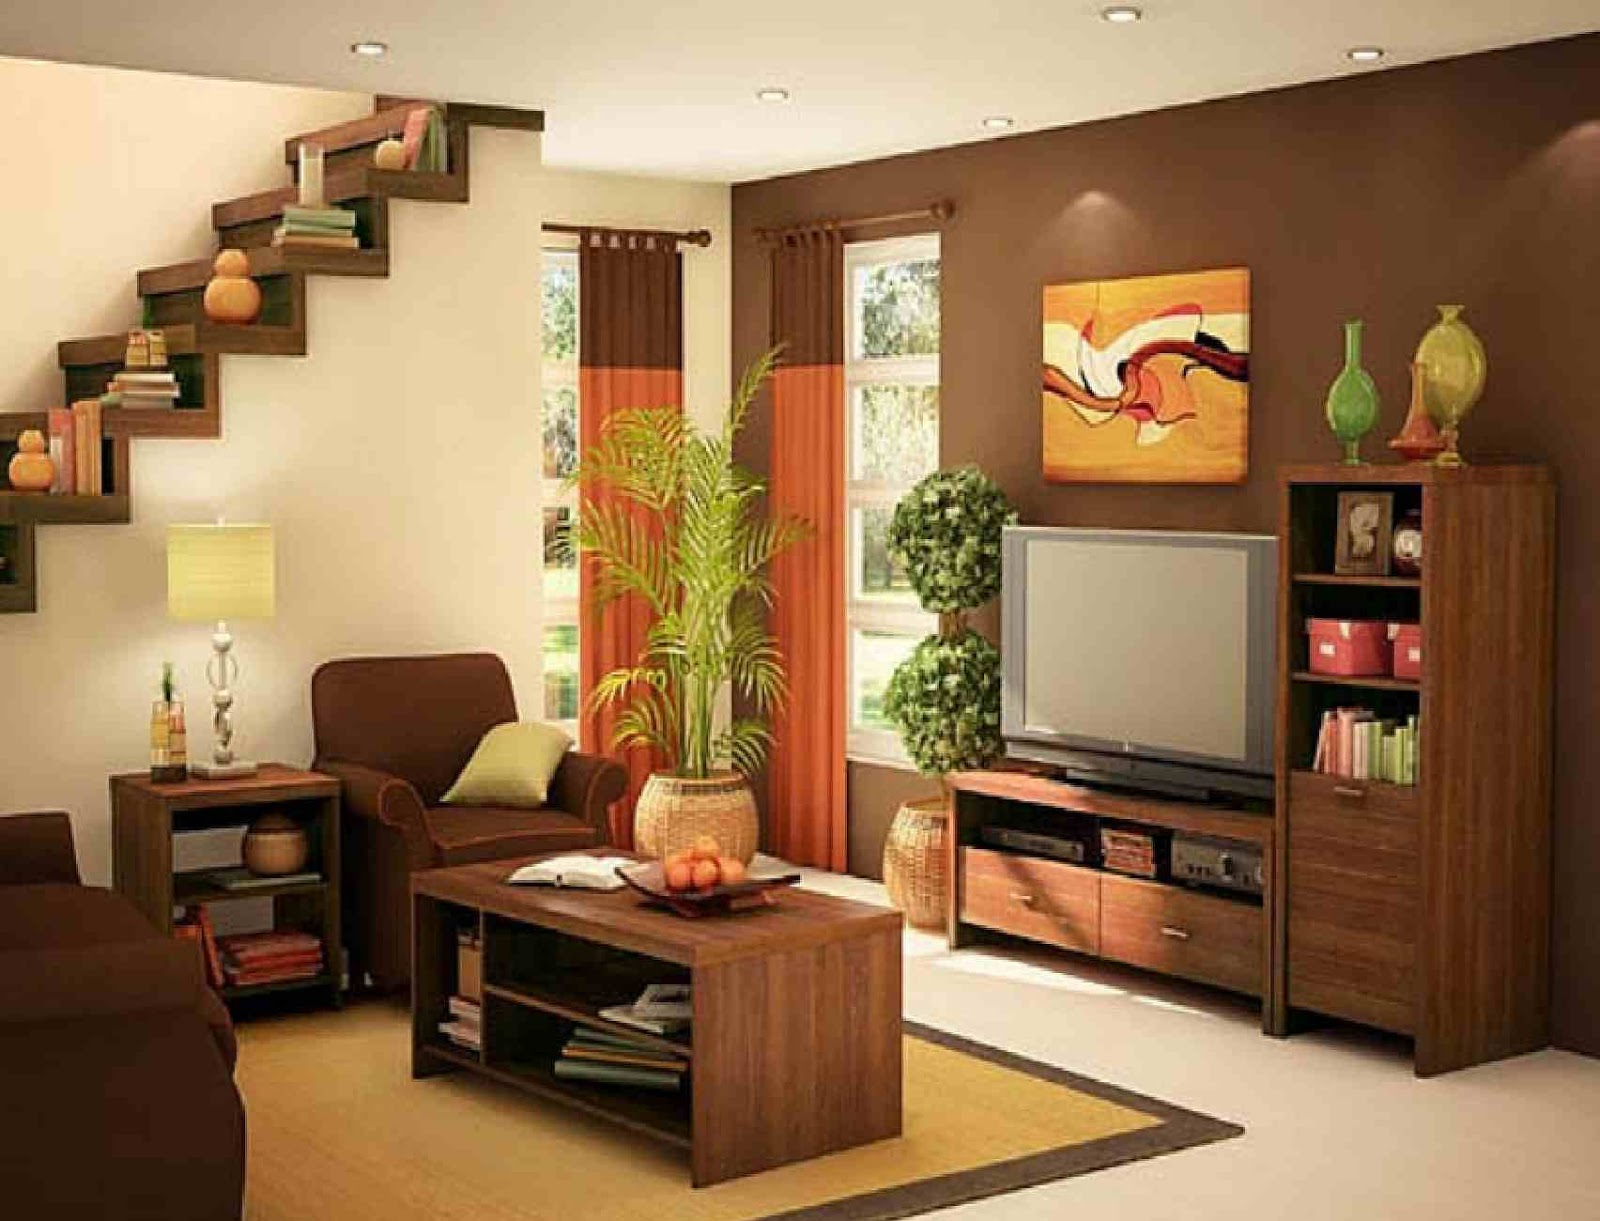 Home interior designs simple living room designs for House interior living room